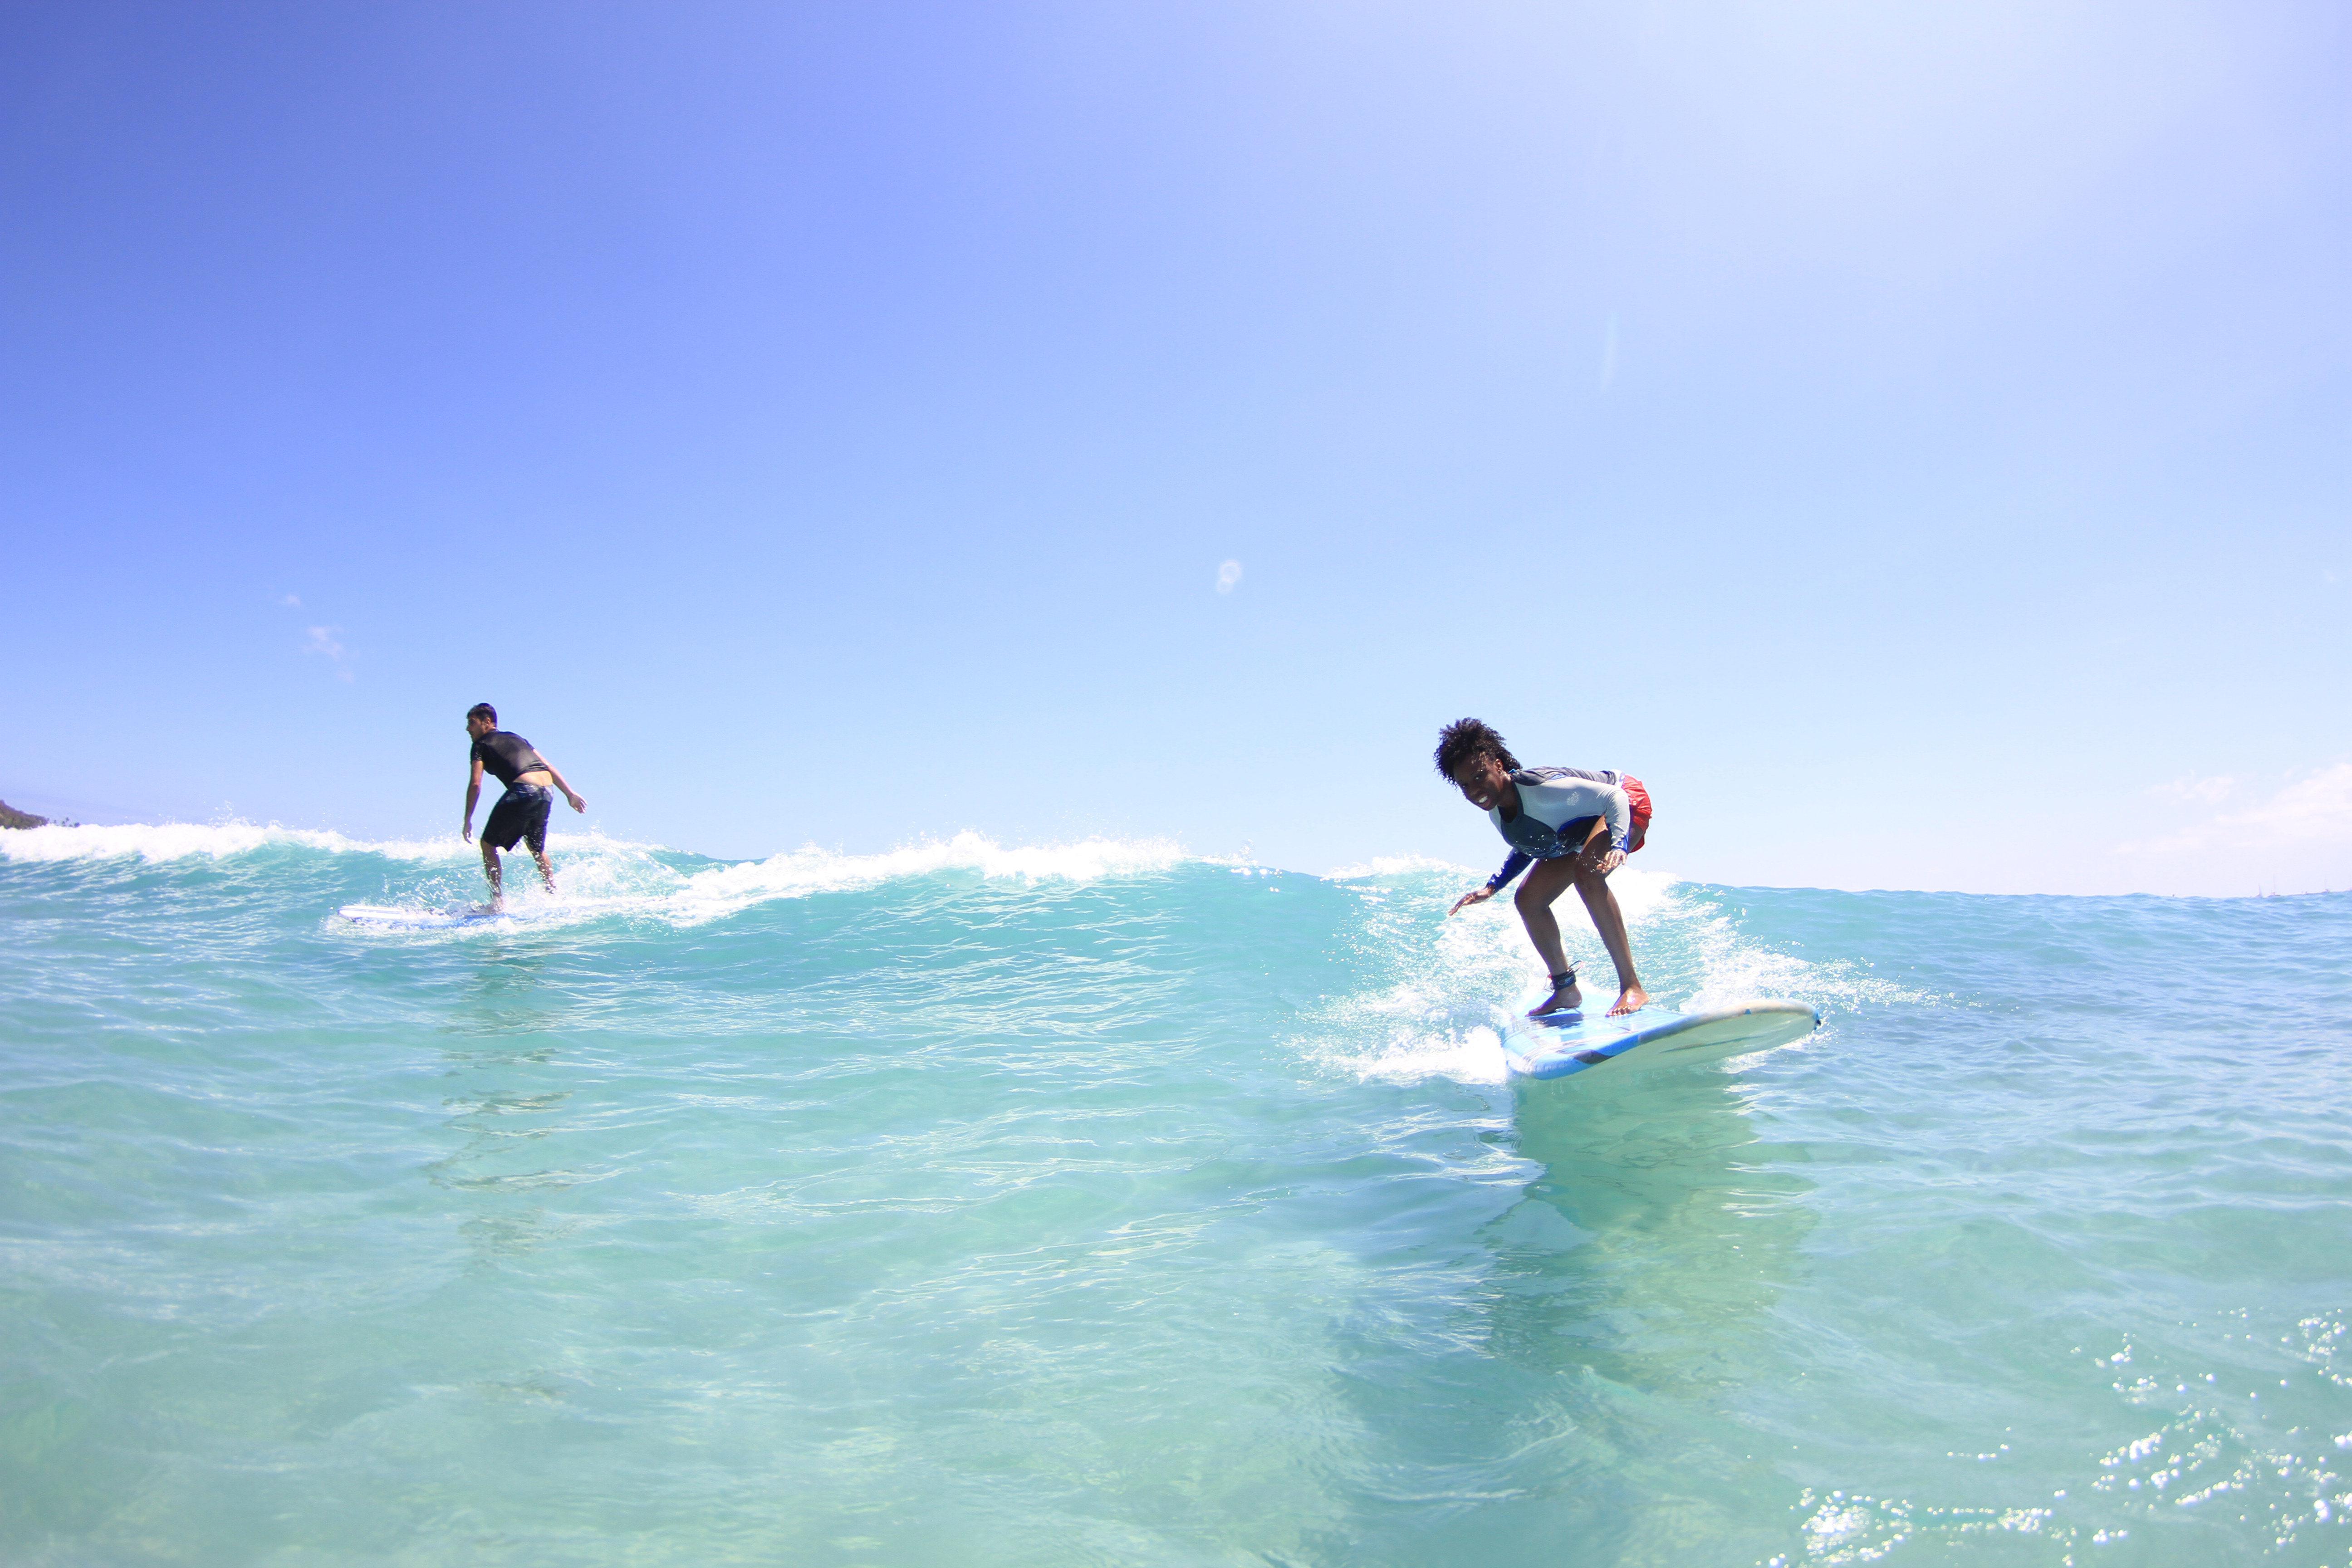 Surfing at Waikiki Beach in Honolulu Hawaii